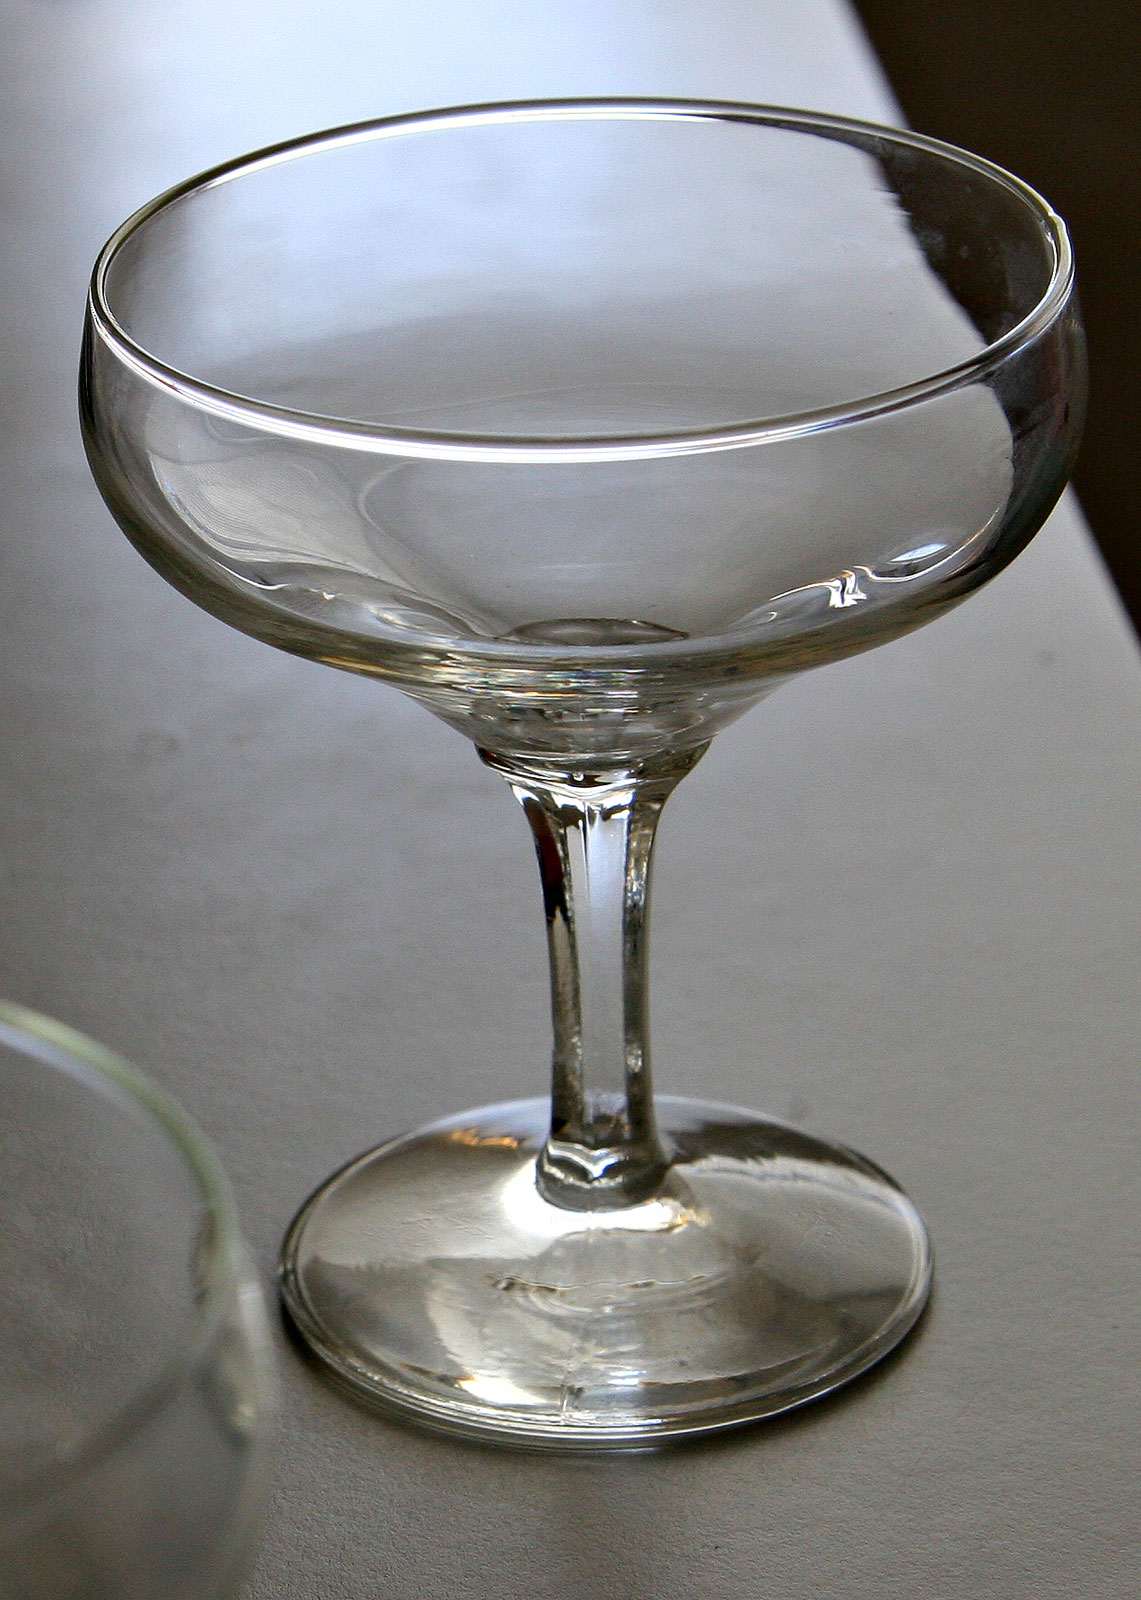 Champagner Glas Types Of Champagne Glasses Ecofren F And B Community